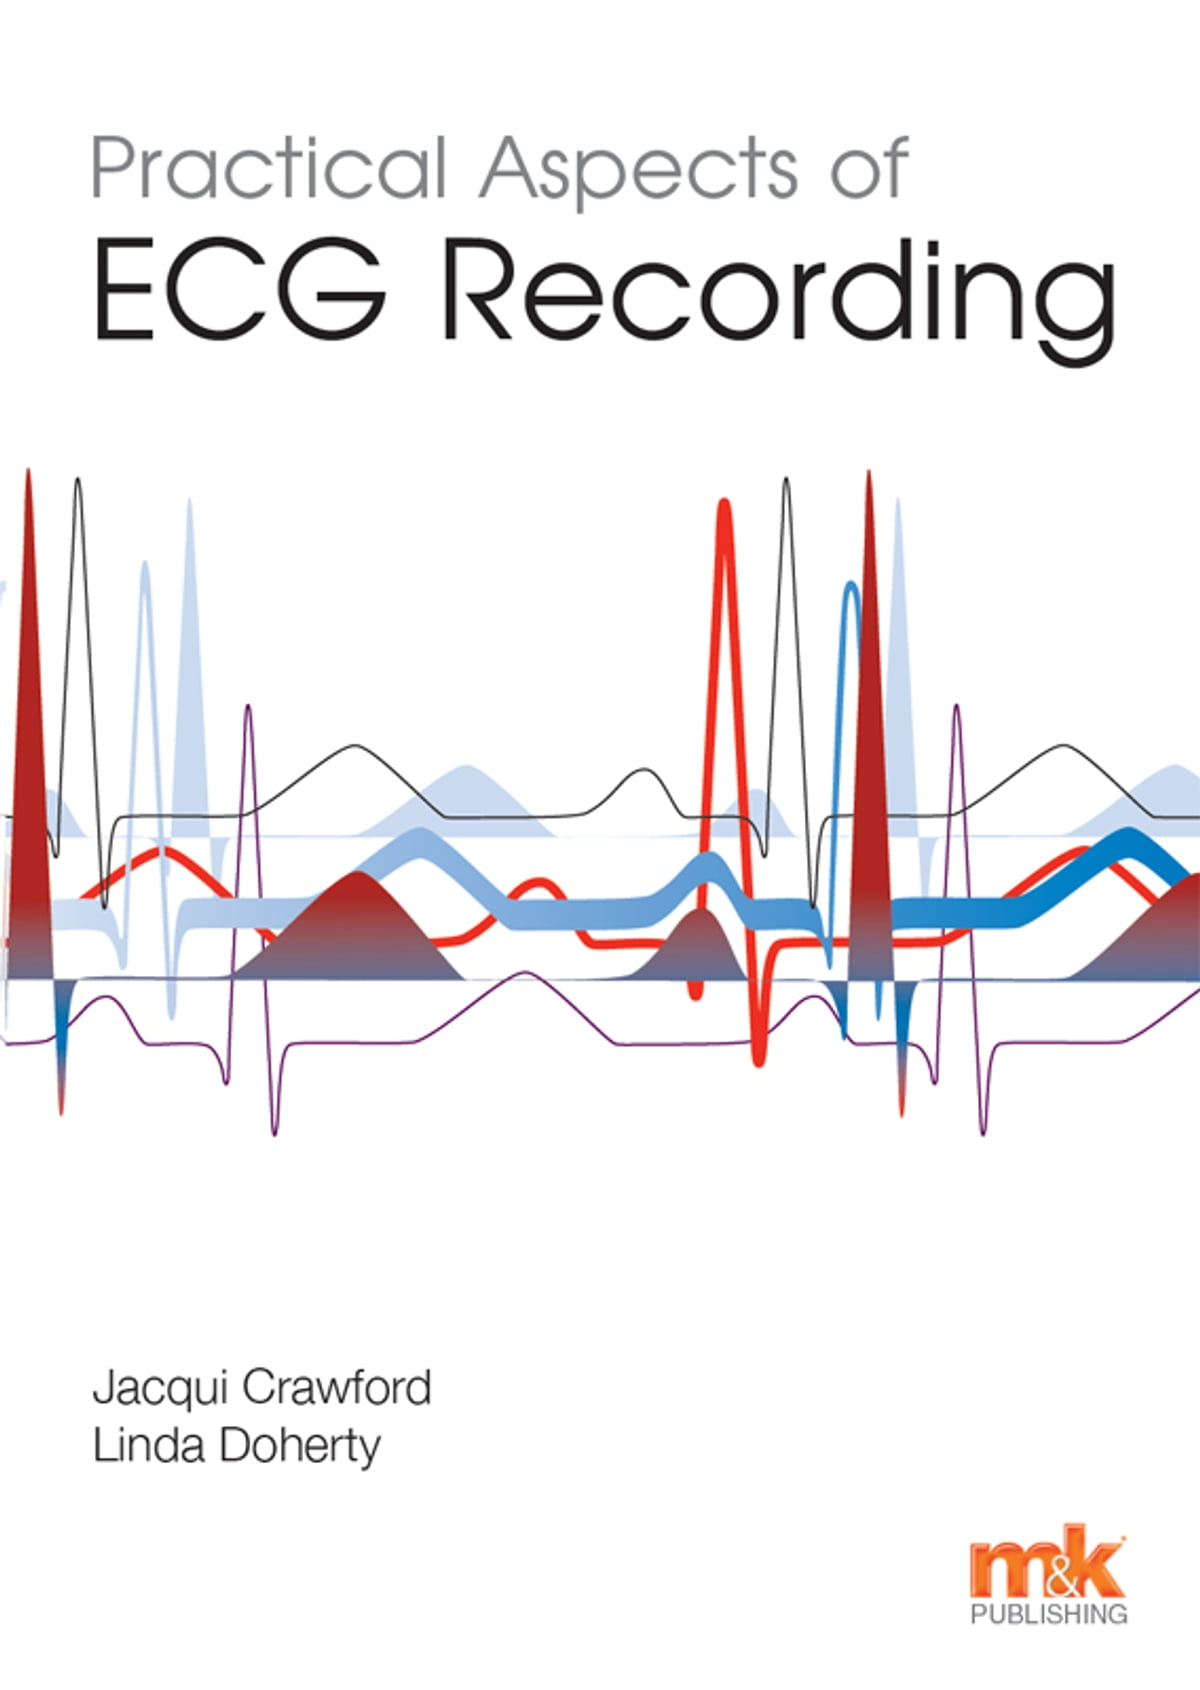 Practical Aspects of ECG Recording eBook by Jacqui Crawford ...